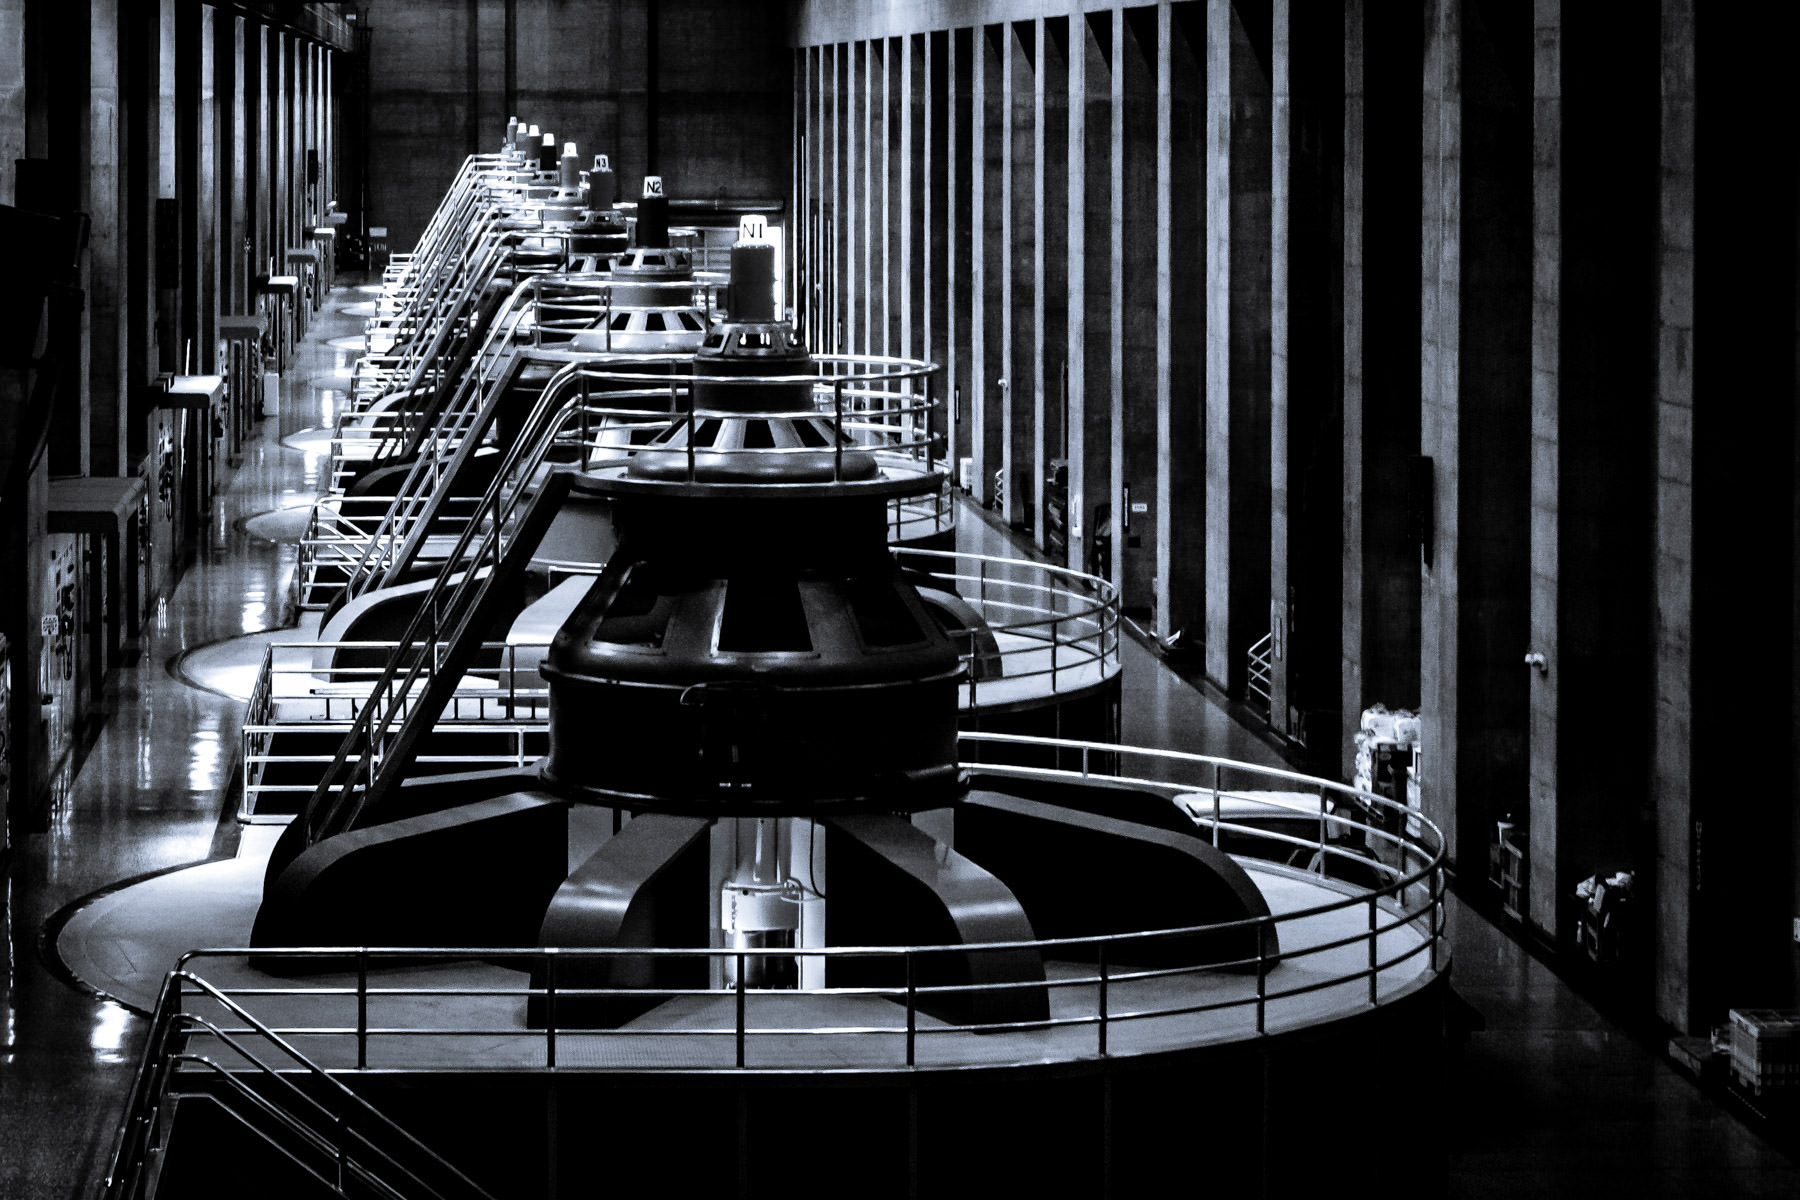 One of the two massive electrical generator rooms at Hoover Dam.